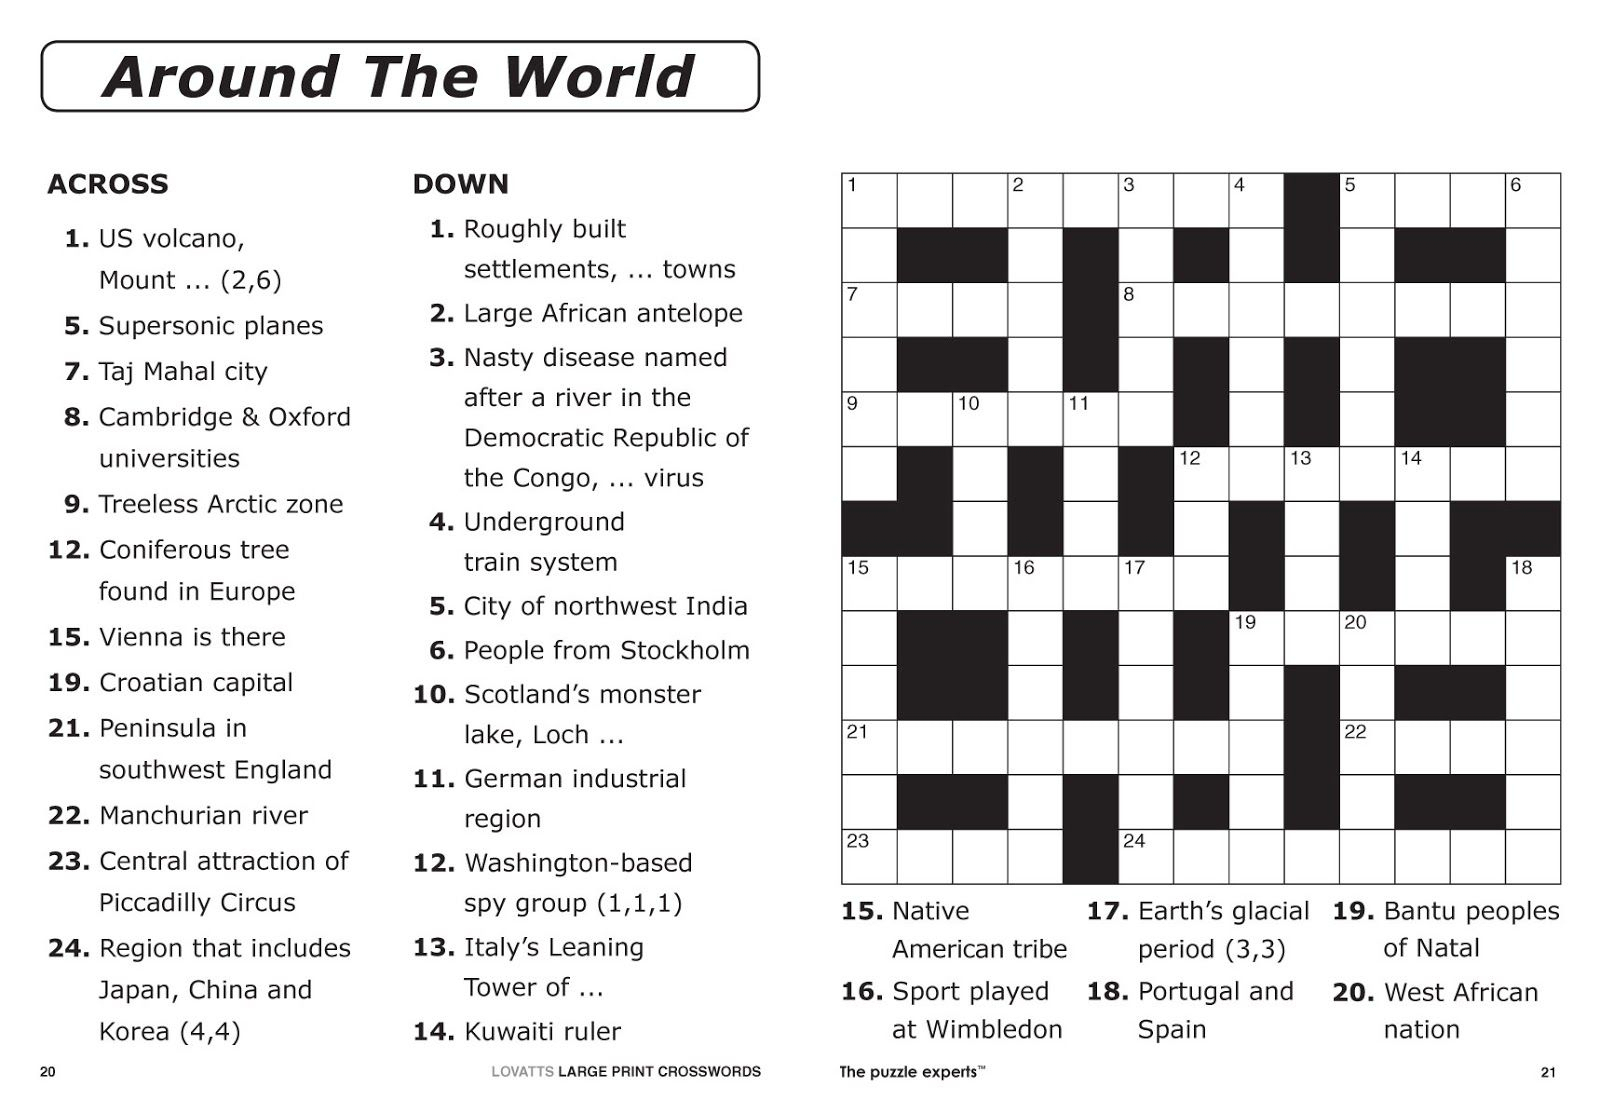 Free Printable Large Print Crossword Puzzles | M3U8 - Printable Crossword Puzzles No Download